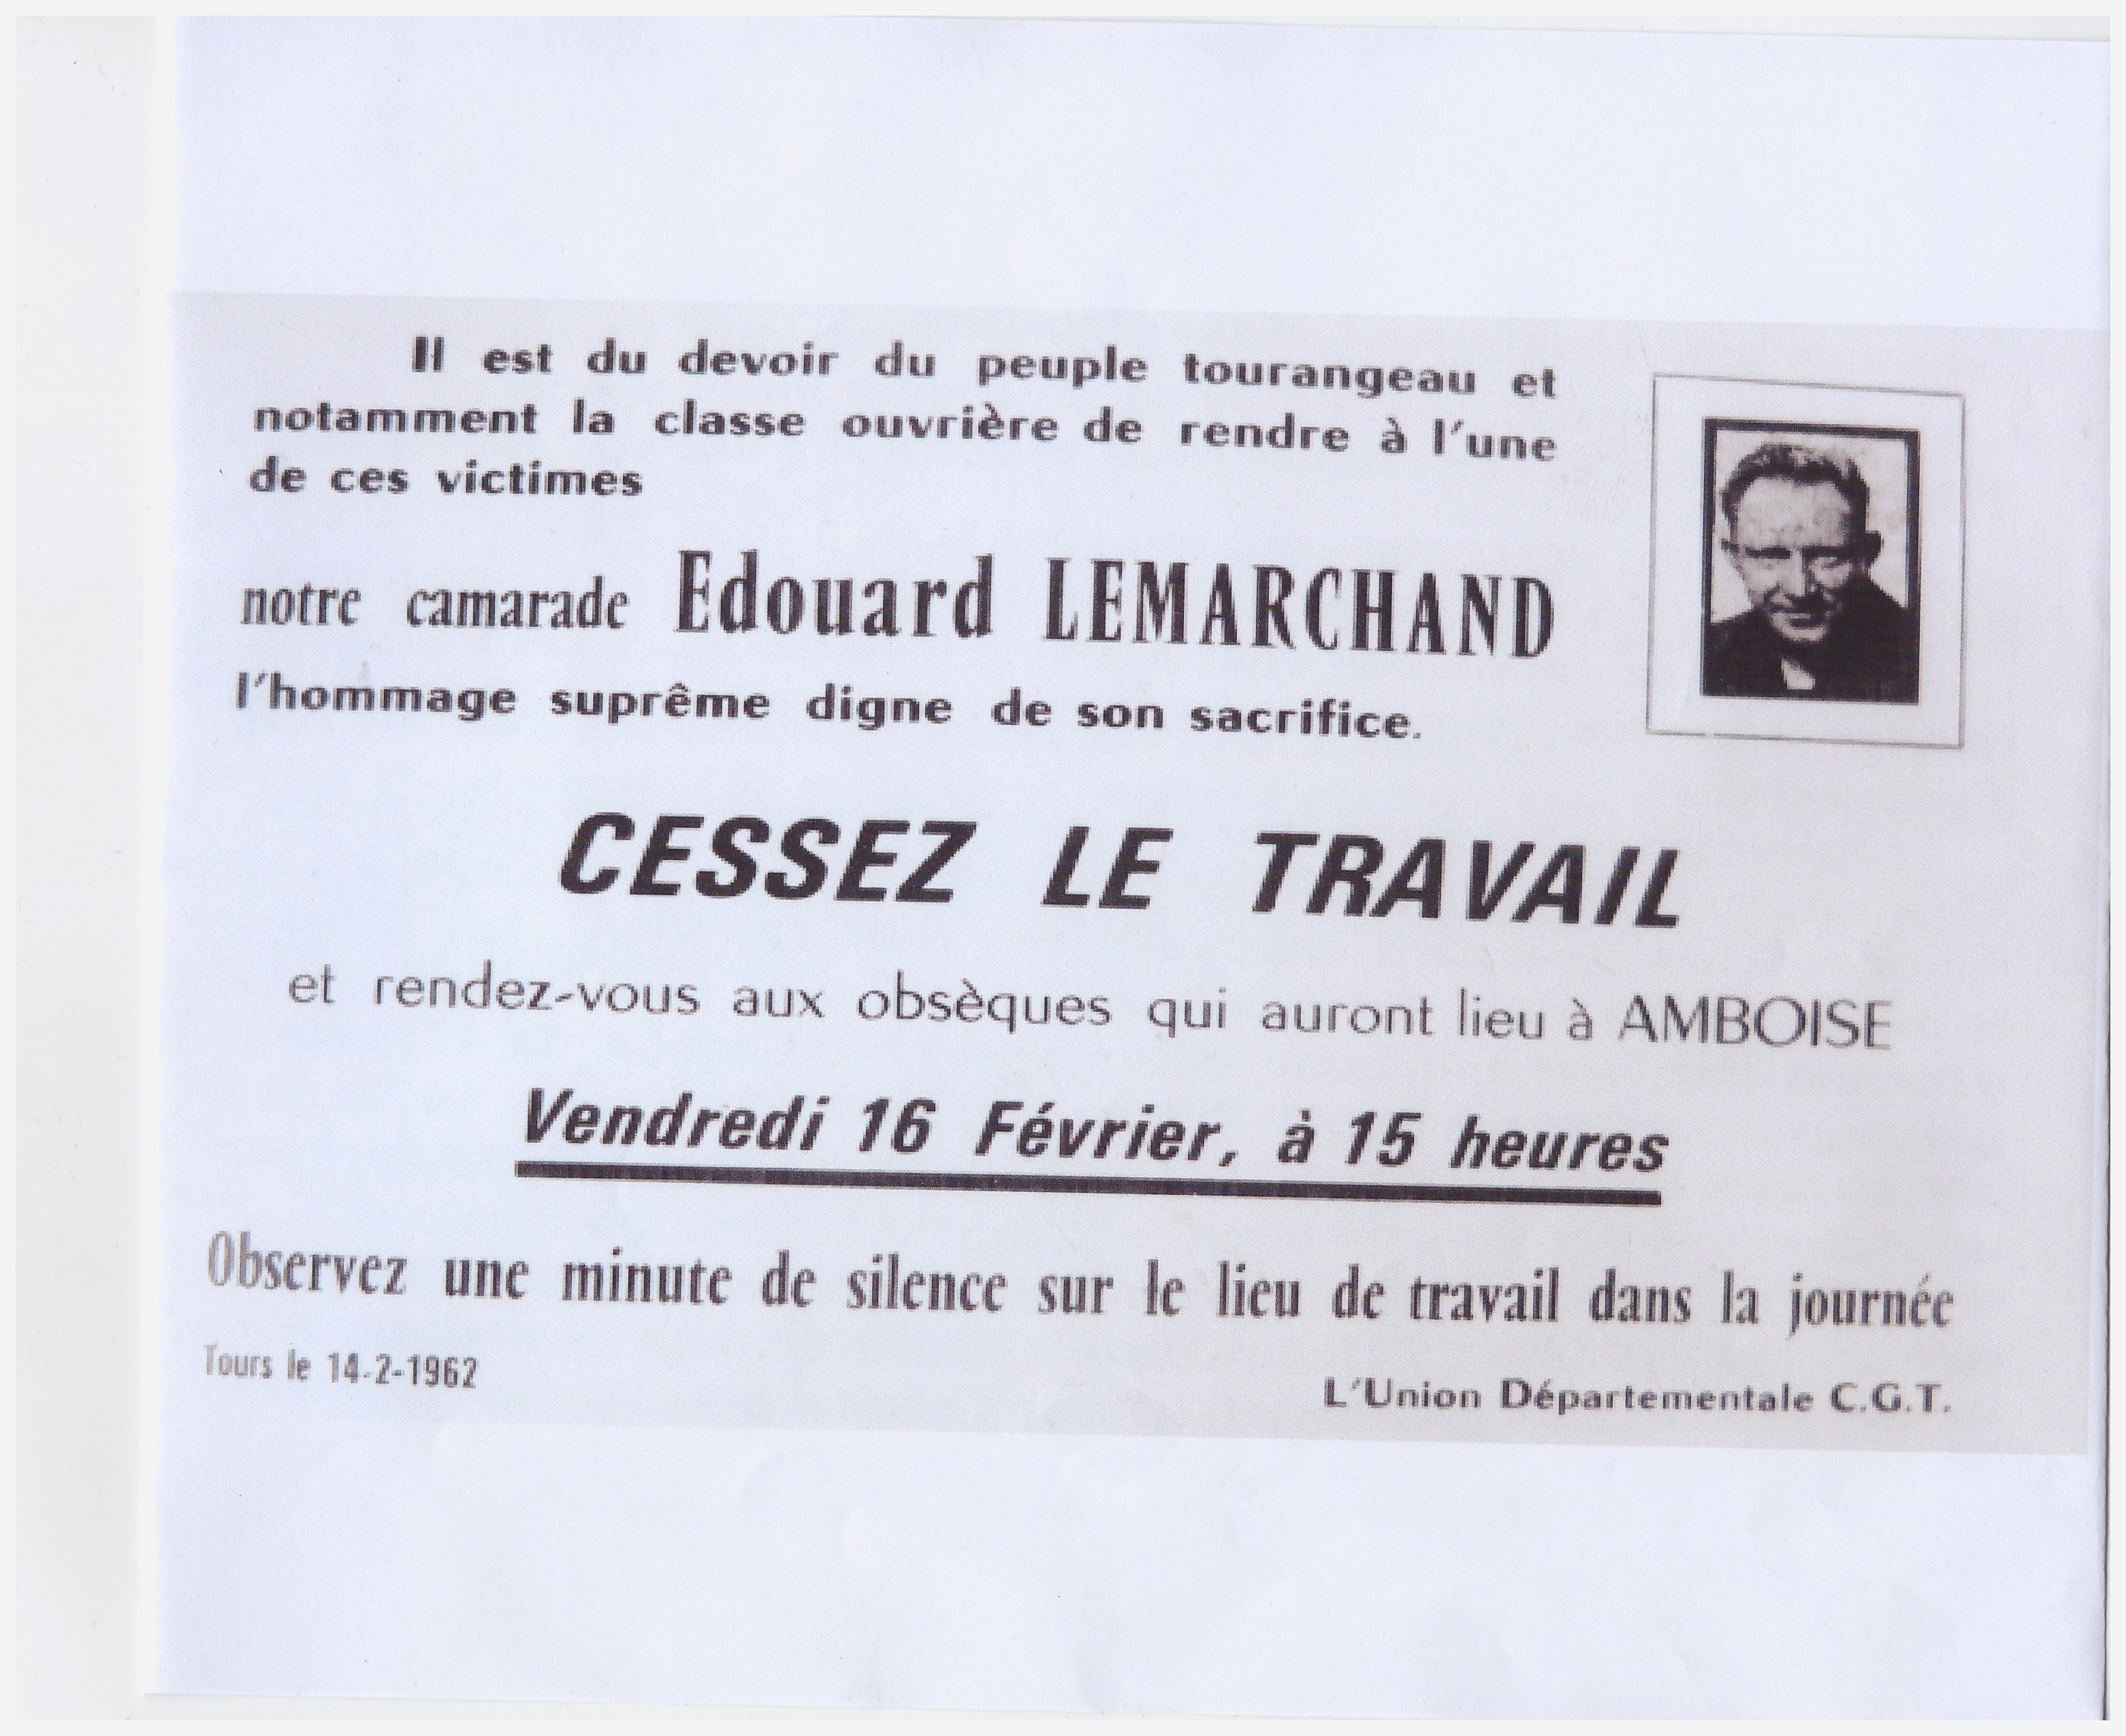 Edouard Lemarchand